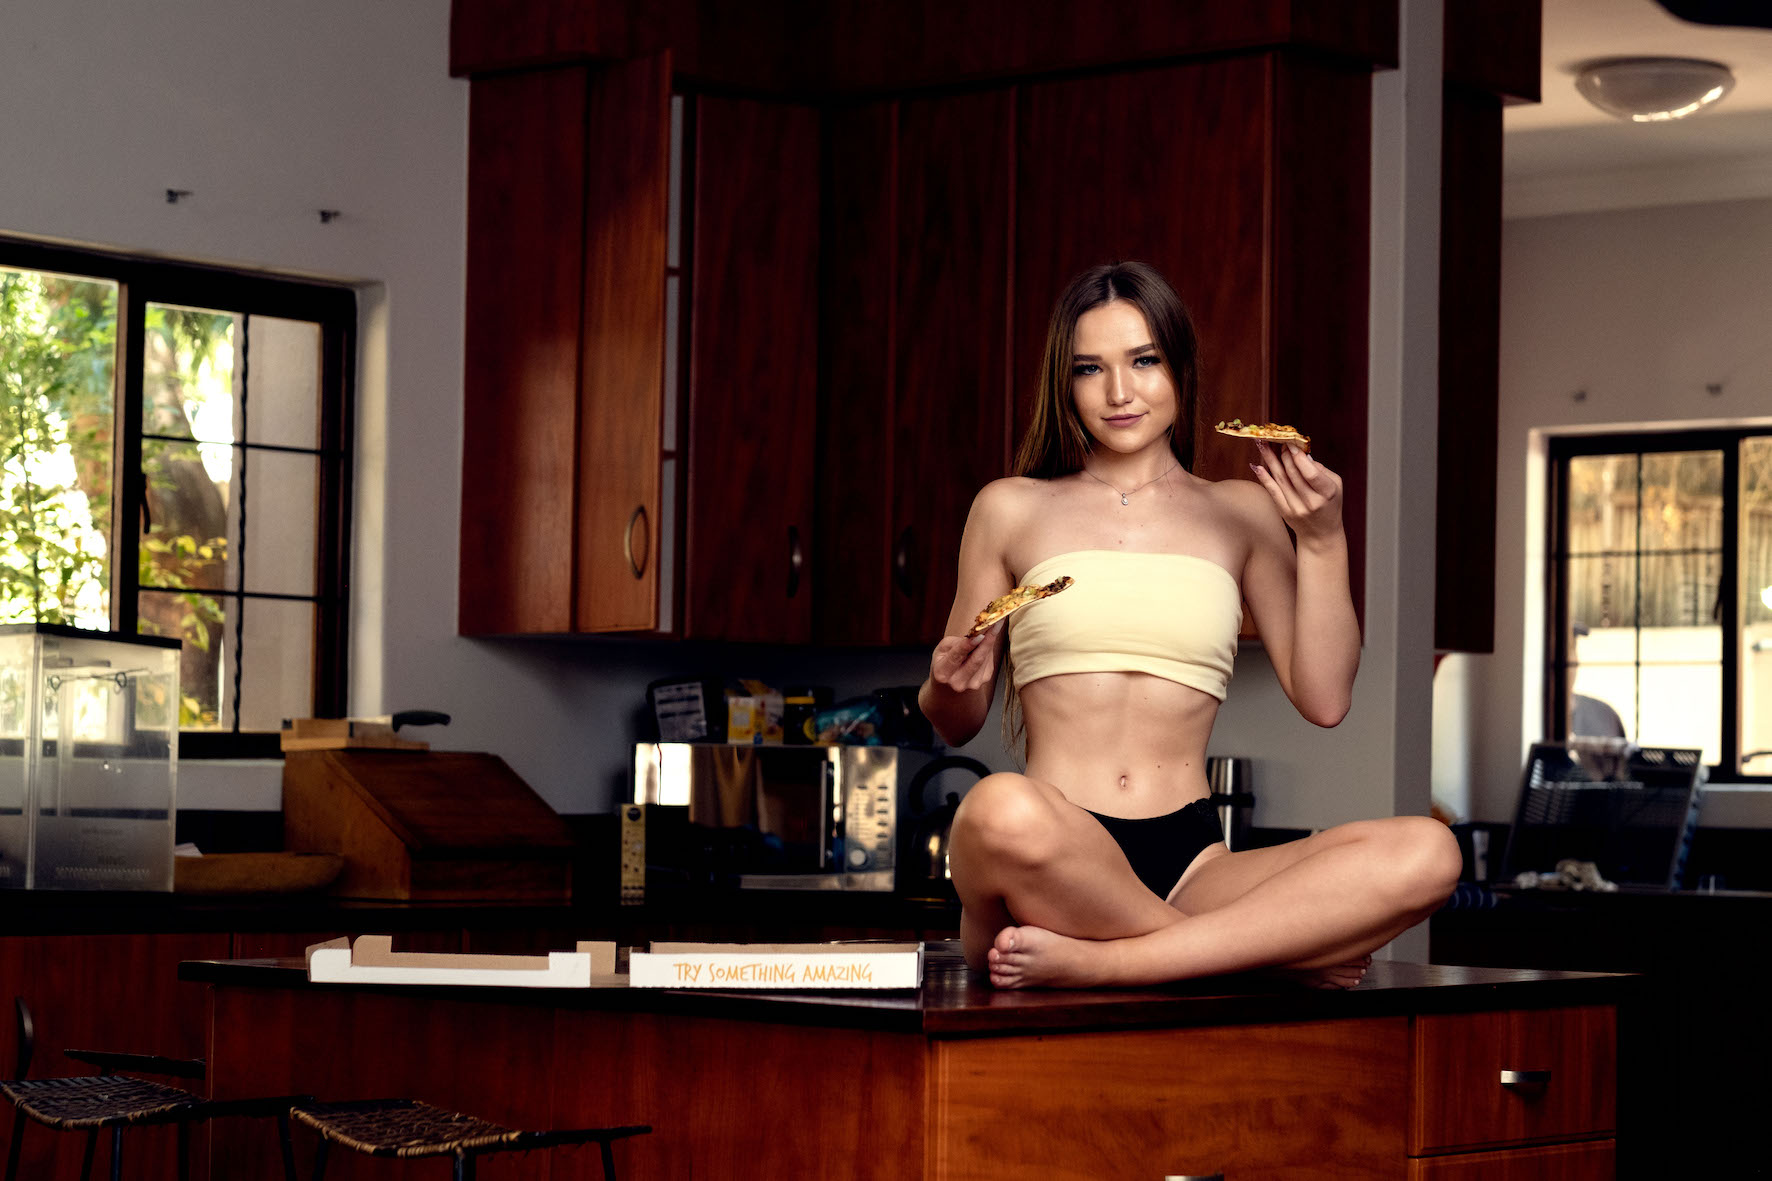 Our LW Babe interview with Belle Westley